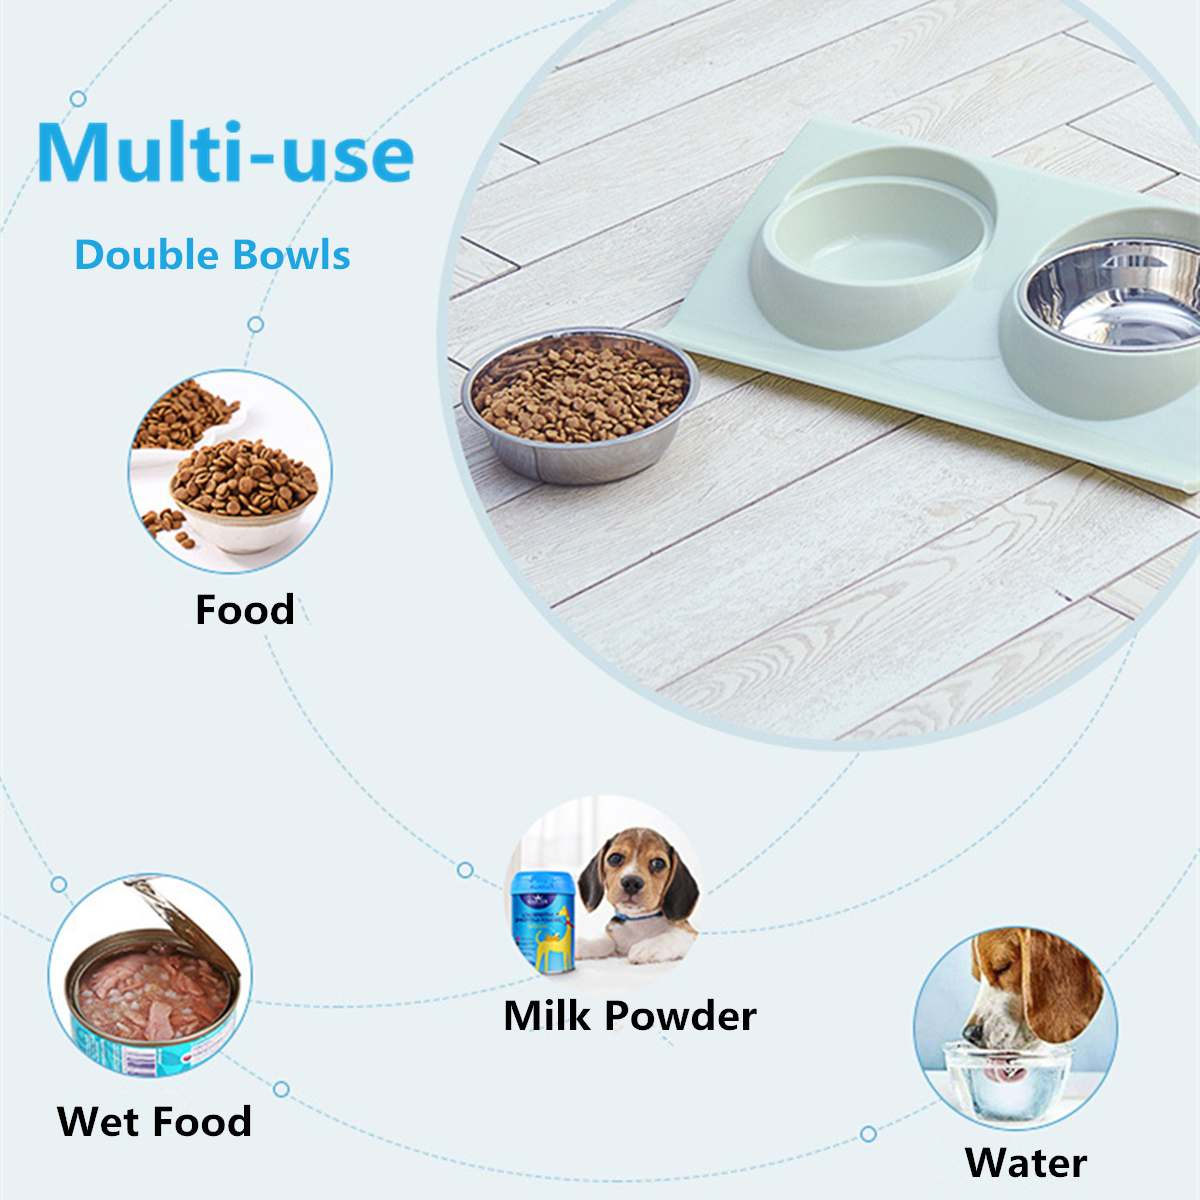 Pet Food and Drink Double Bowl